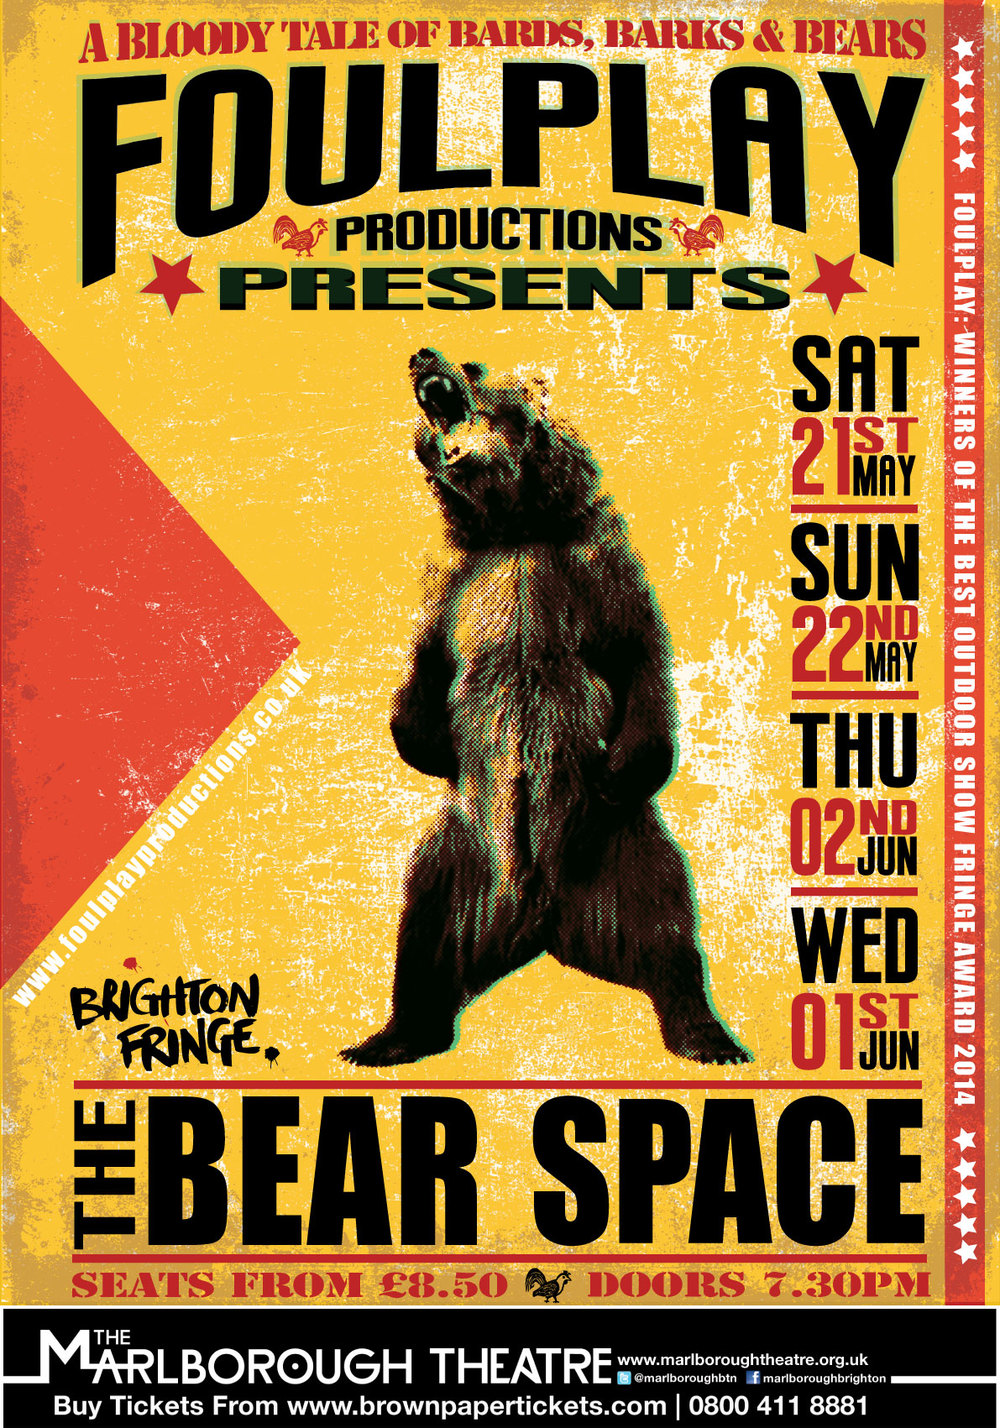 Bear Space poster, winning design as voted for by supporters of the FoulPlay facebook page. This version was intended to draw on poster artwork for classic boxing contests, as a part of the show sought to use modern mechanisms for stirring up the audience encouraging their frenzied fervor at this most savage blood sport.